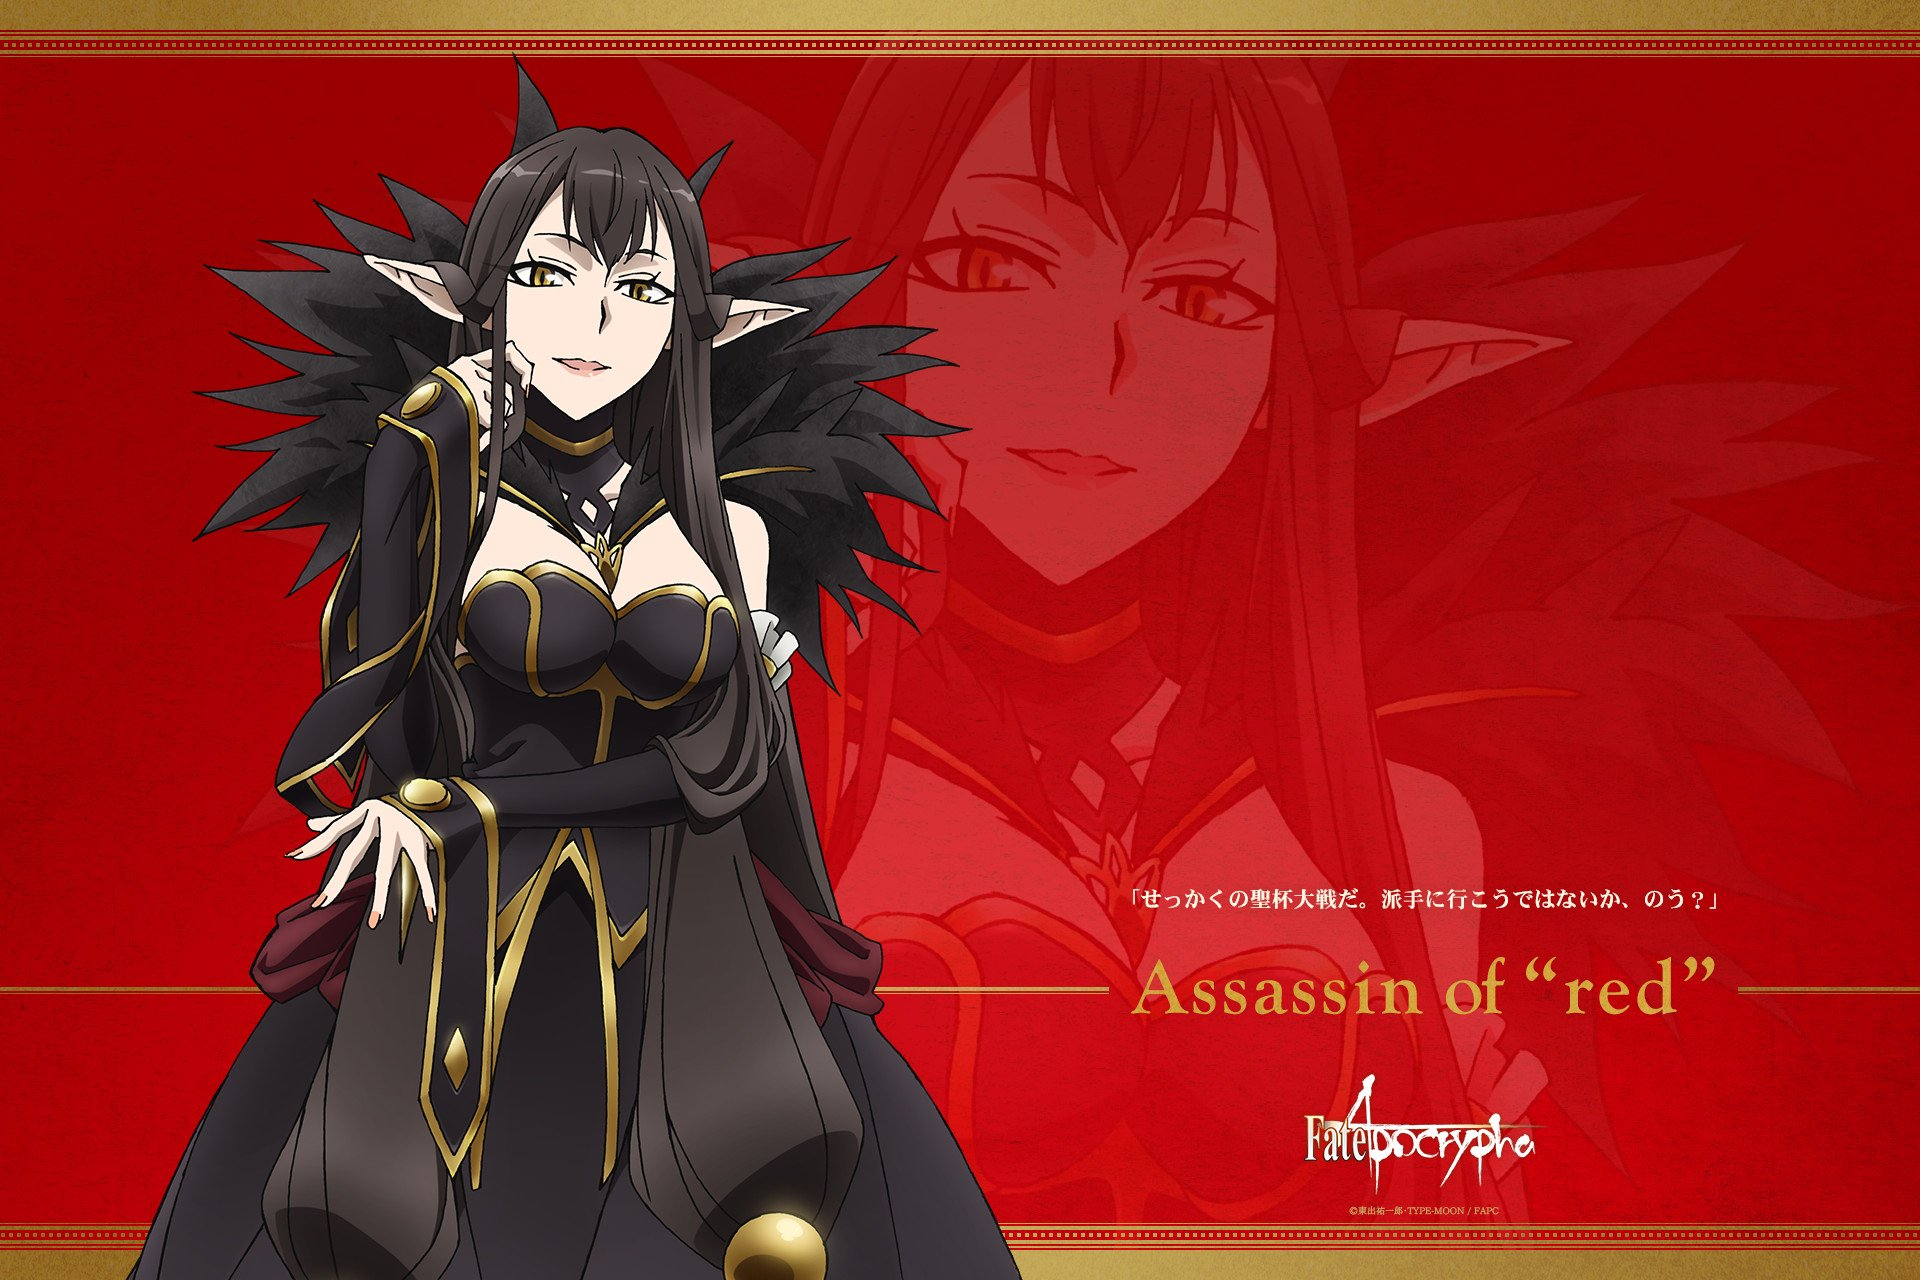 Anime - Fate/Apocrypha Assassin of Red (Fate/Apocrypha) Wallpaper